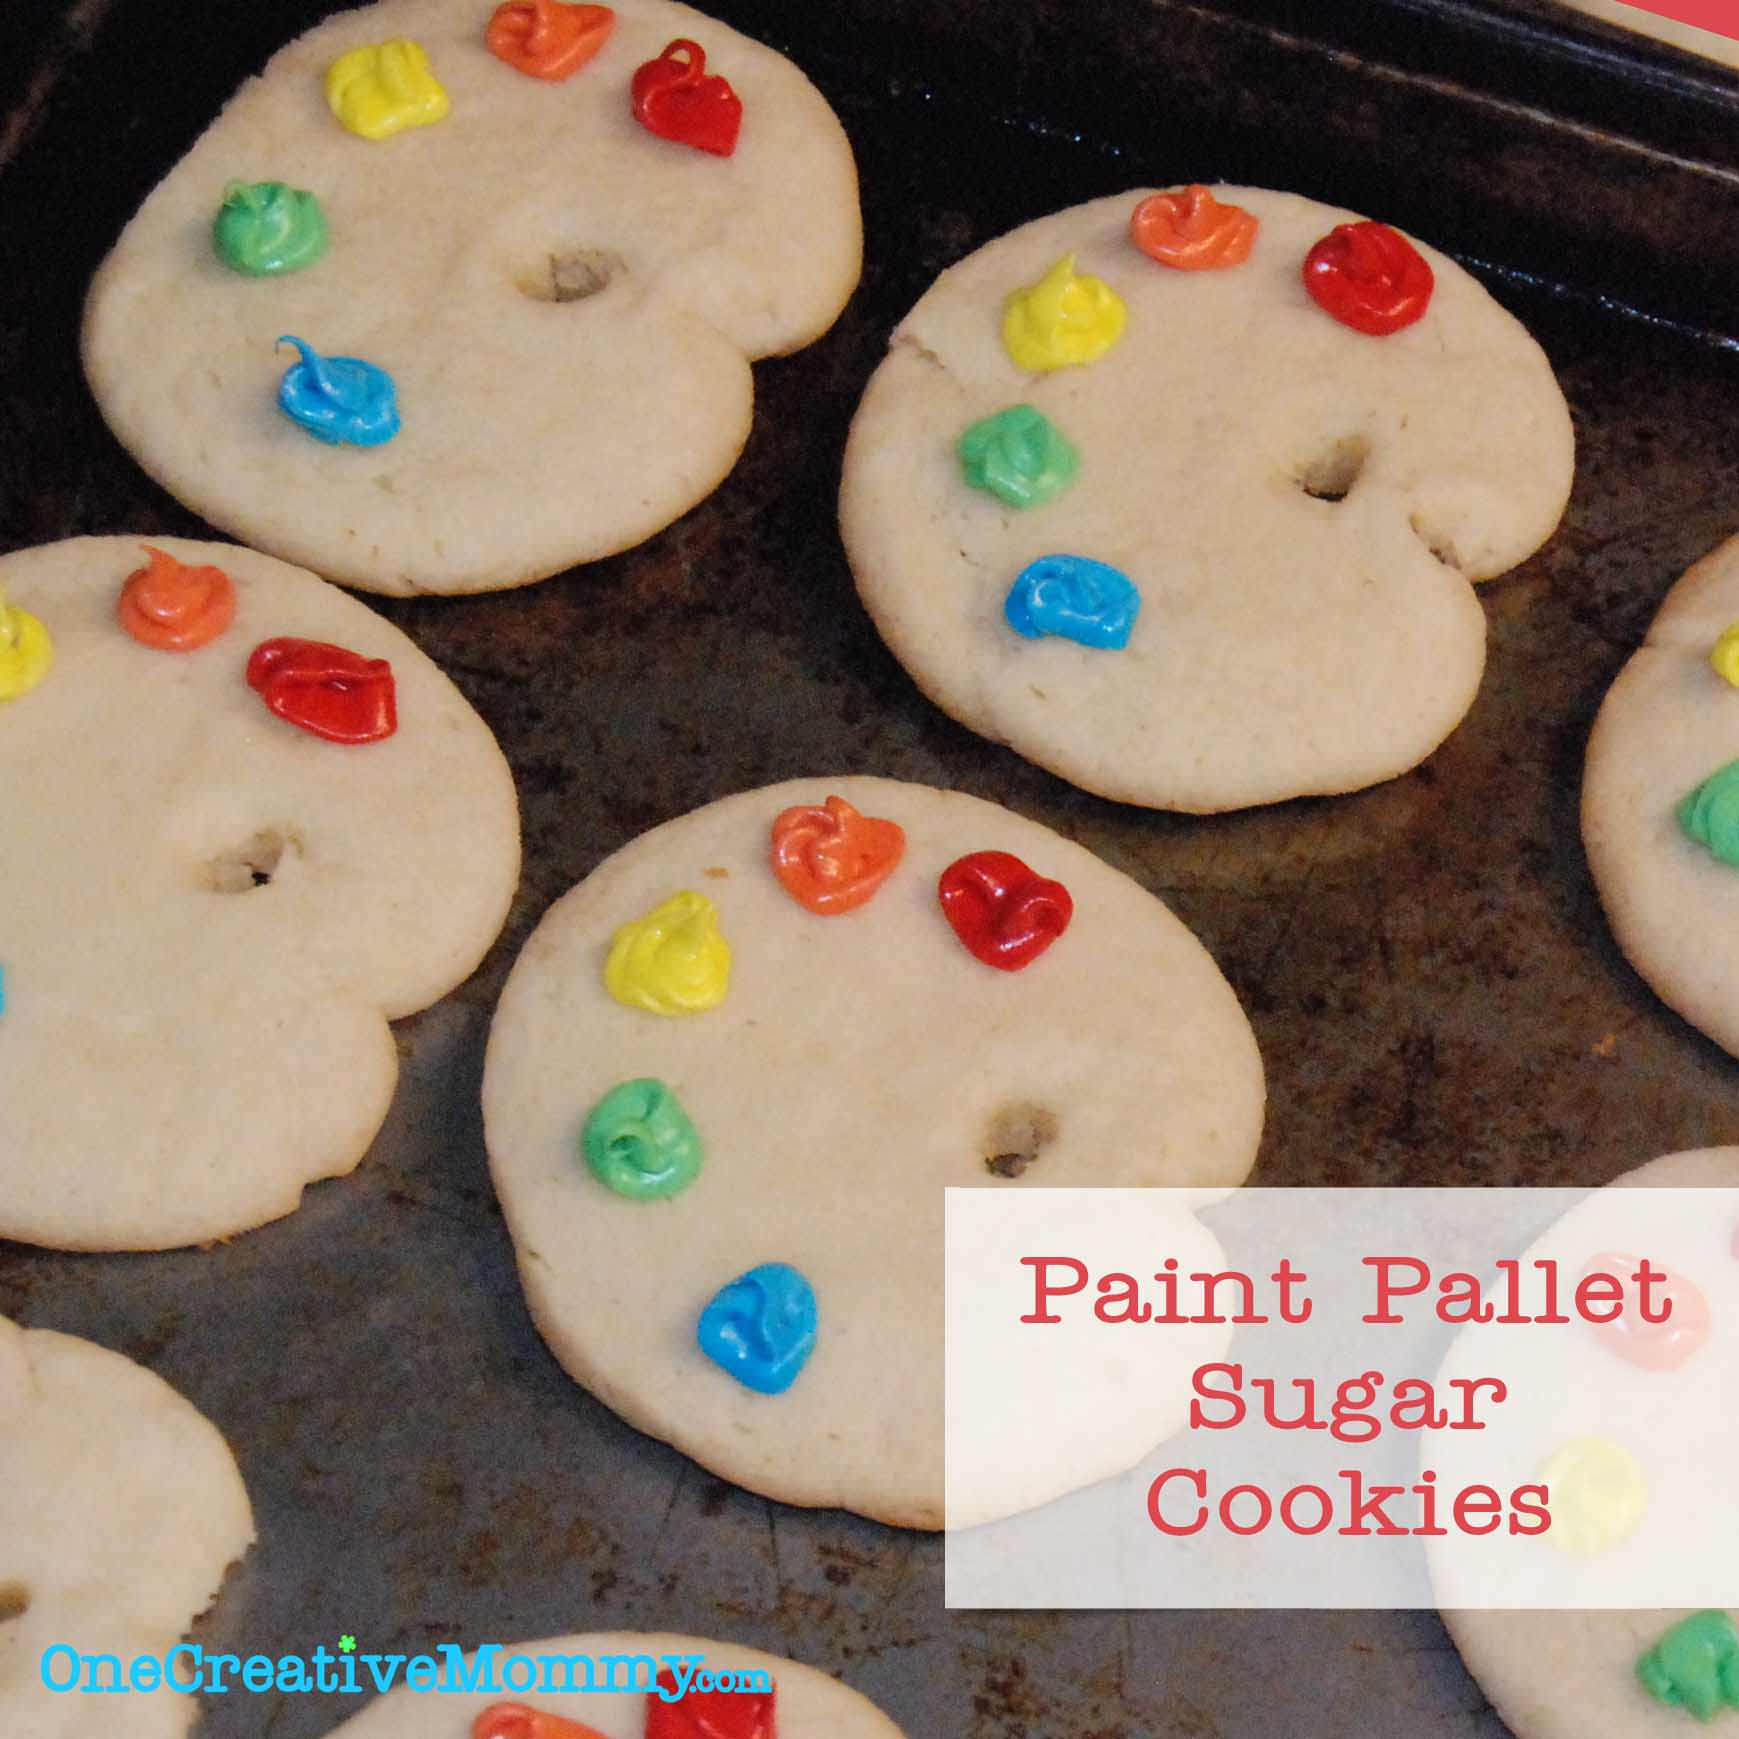 Paint Pallet Sugar Cookies Tutorial